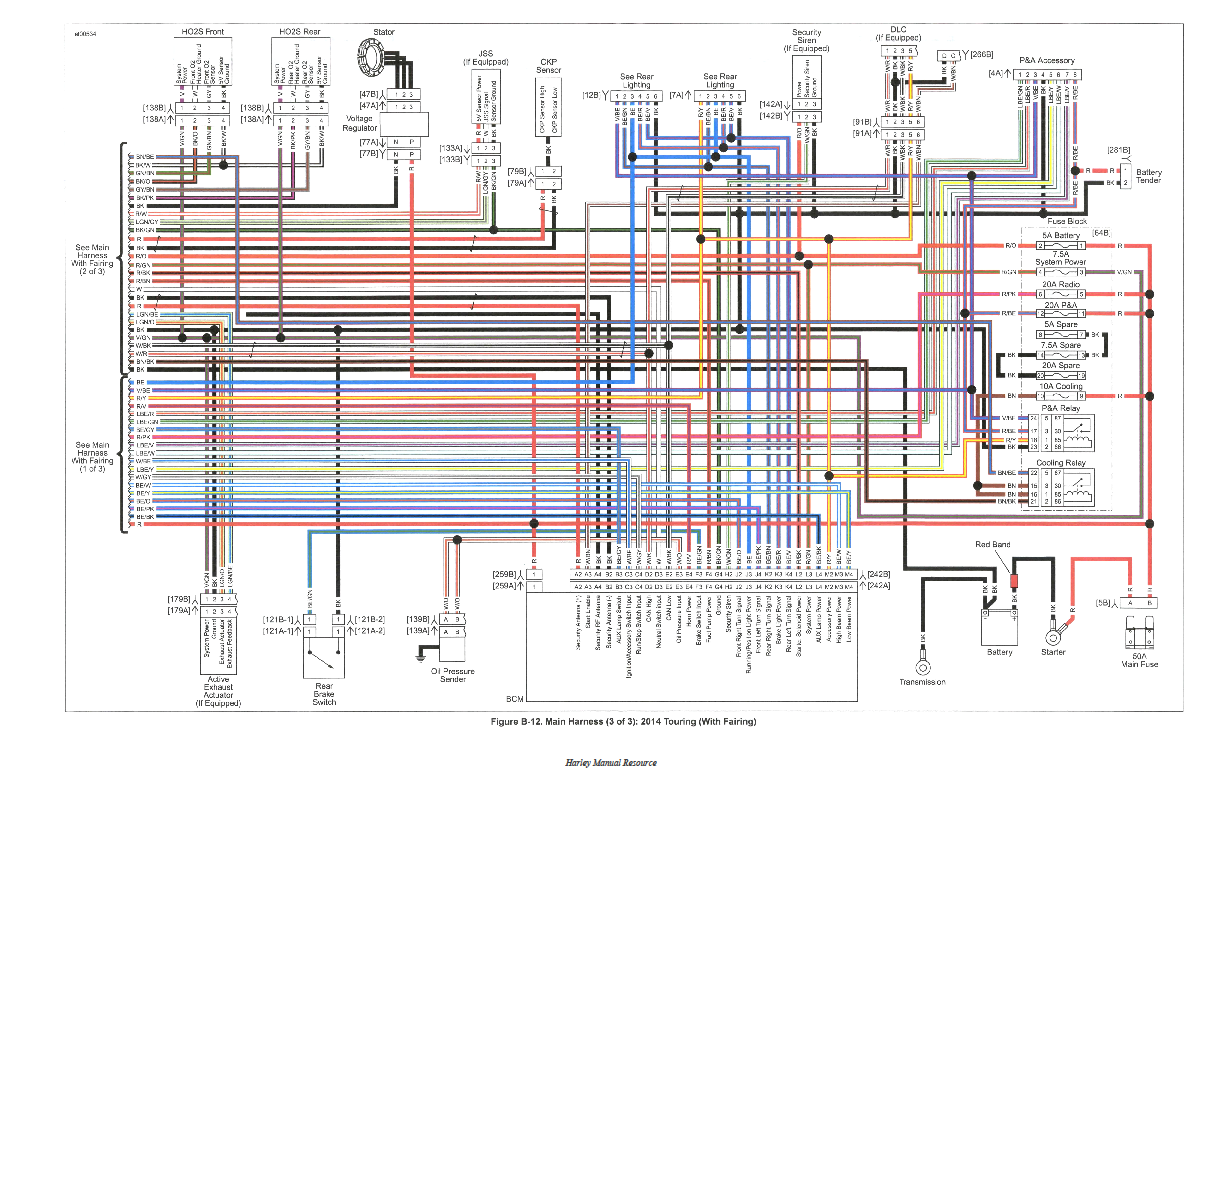 2010 Street Glide Wiring Diagram - Wiring Diagram Center on